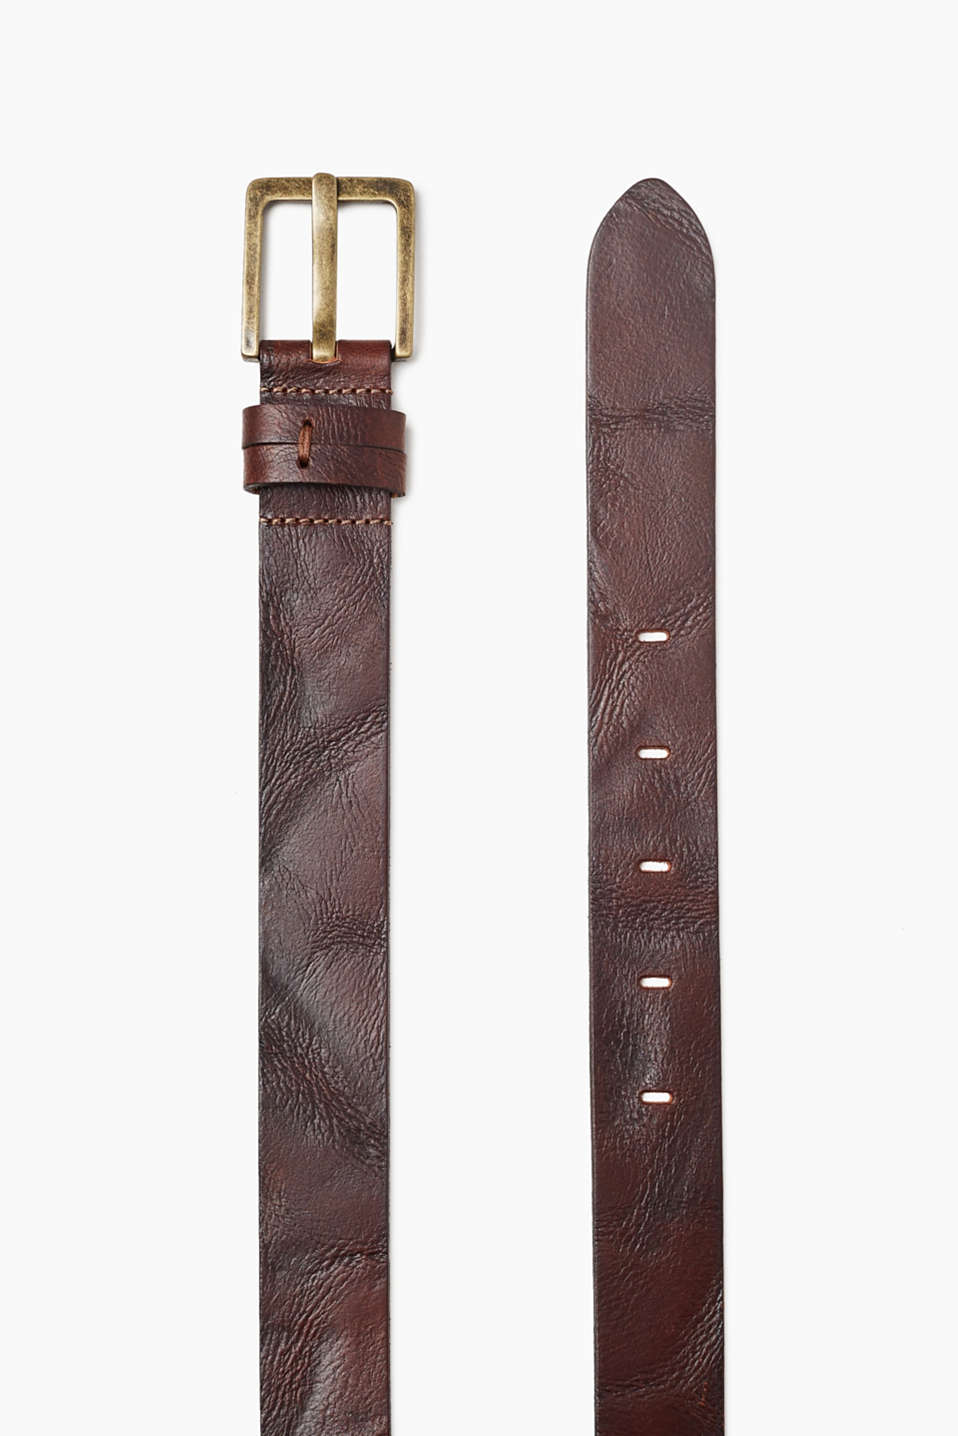 Buffalo leather with a grain in a vintage finish and with a distinctive metal buckle – the perfect belt for urban denim looks!